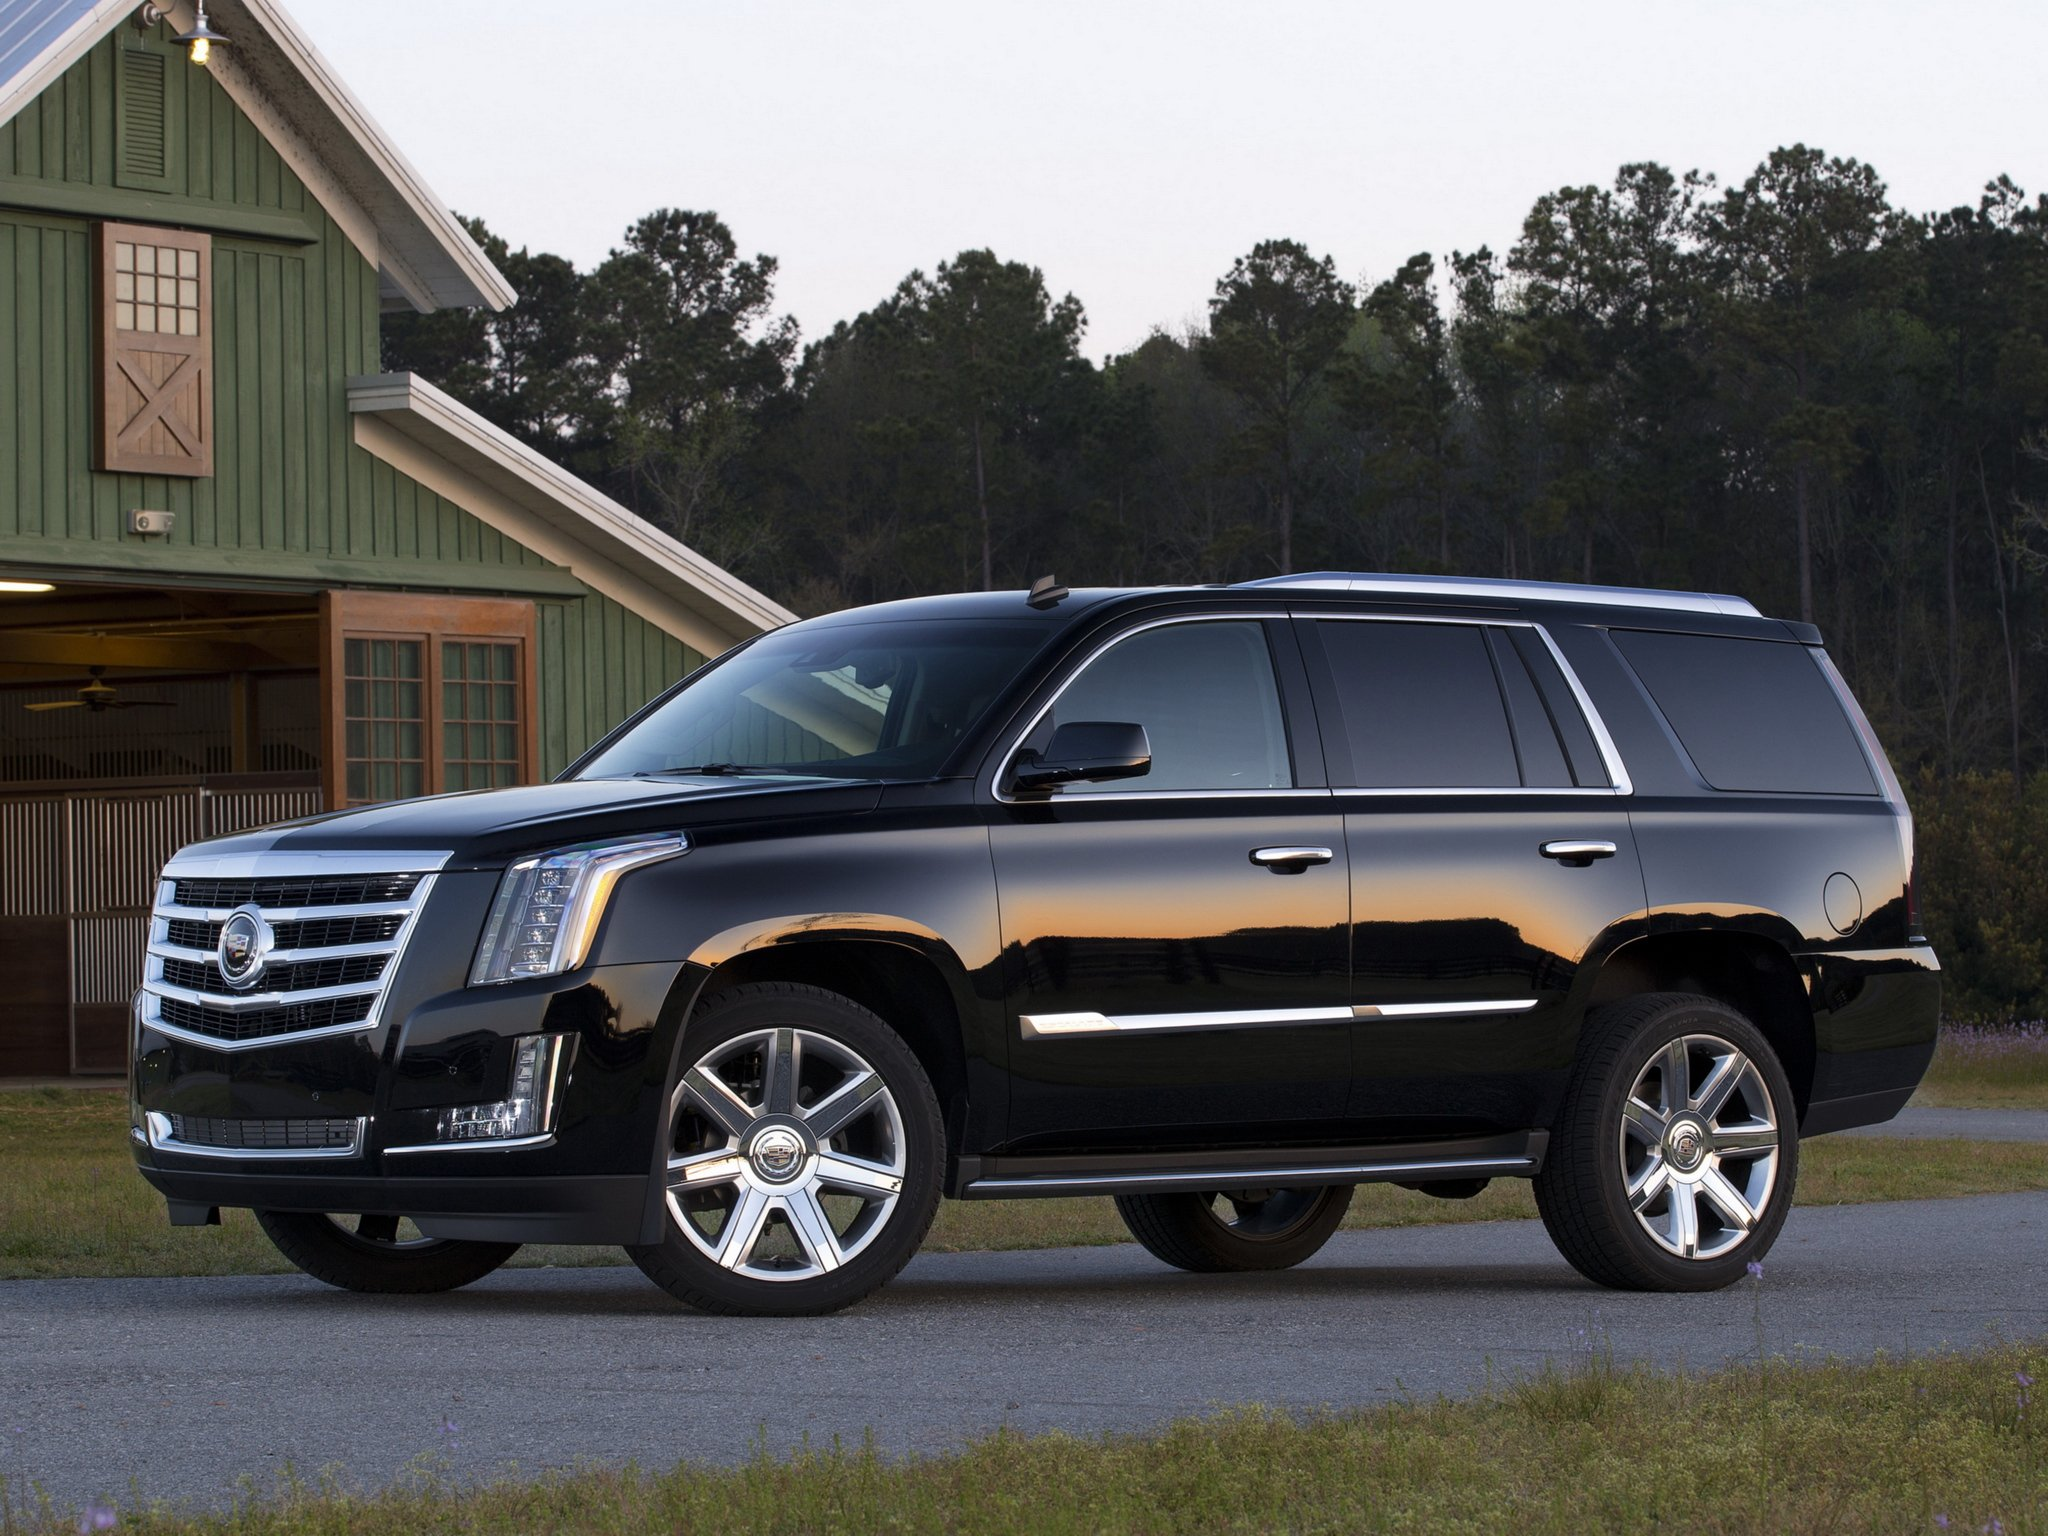 2015 cadillac escalade suv luxury h wallpaper 2048x1536 332228 wallpaperup. Black Bedroom Furniture Sets. Home Design Ideas